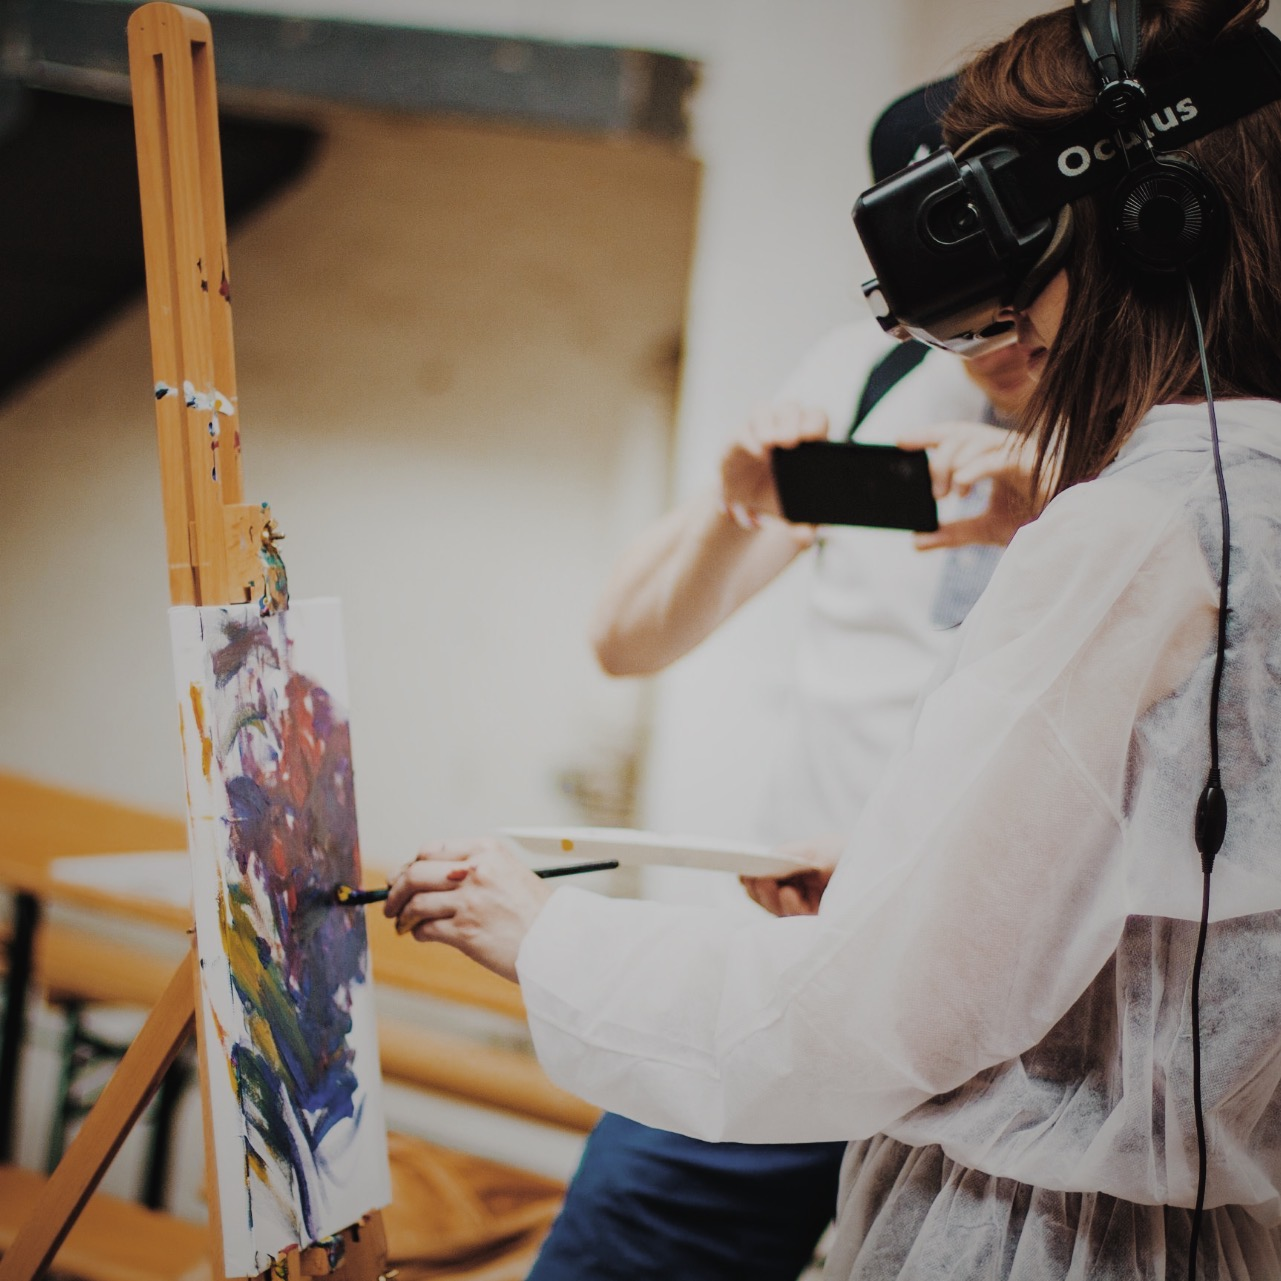 Event Recap: Digital Discovery: Experiencing Art through XR